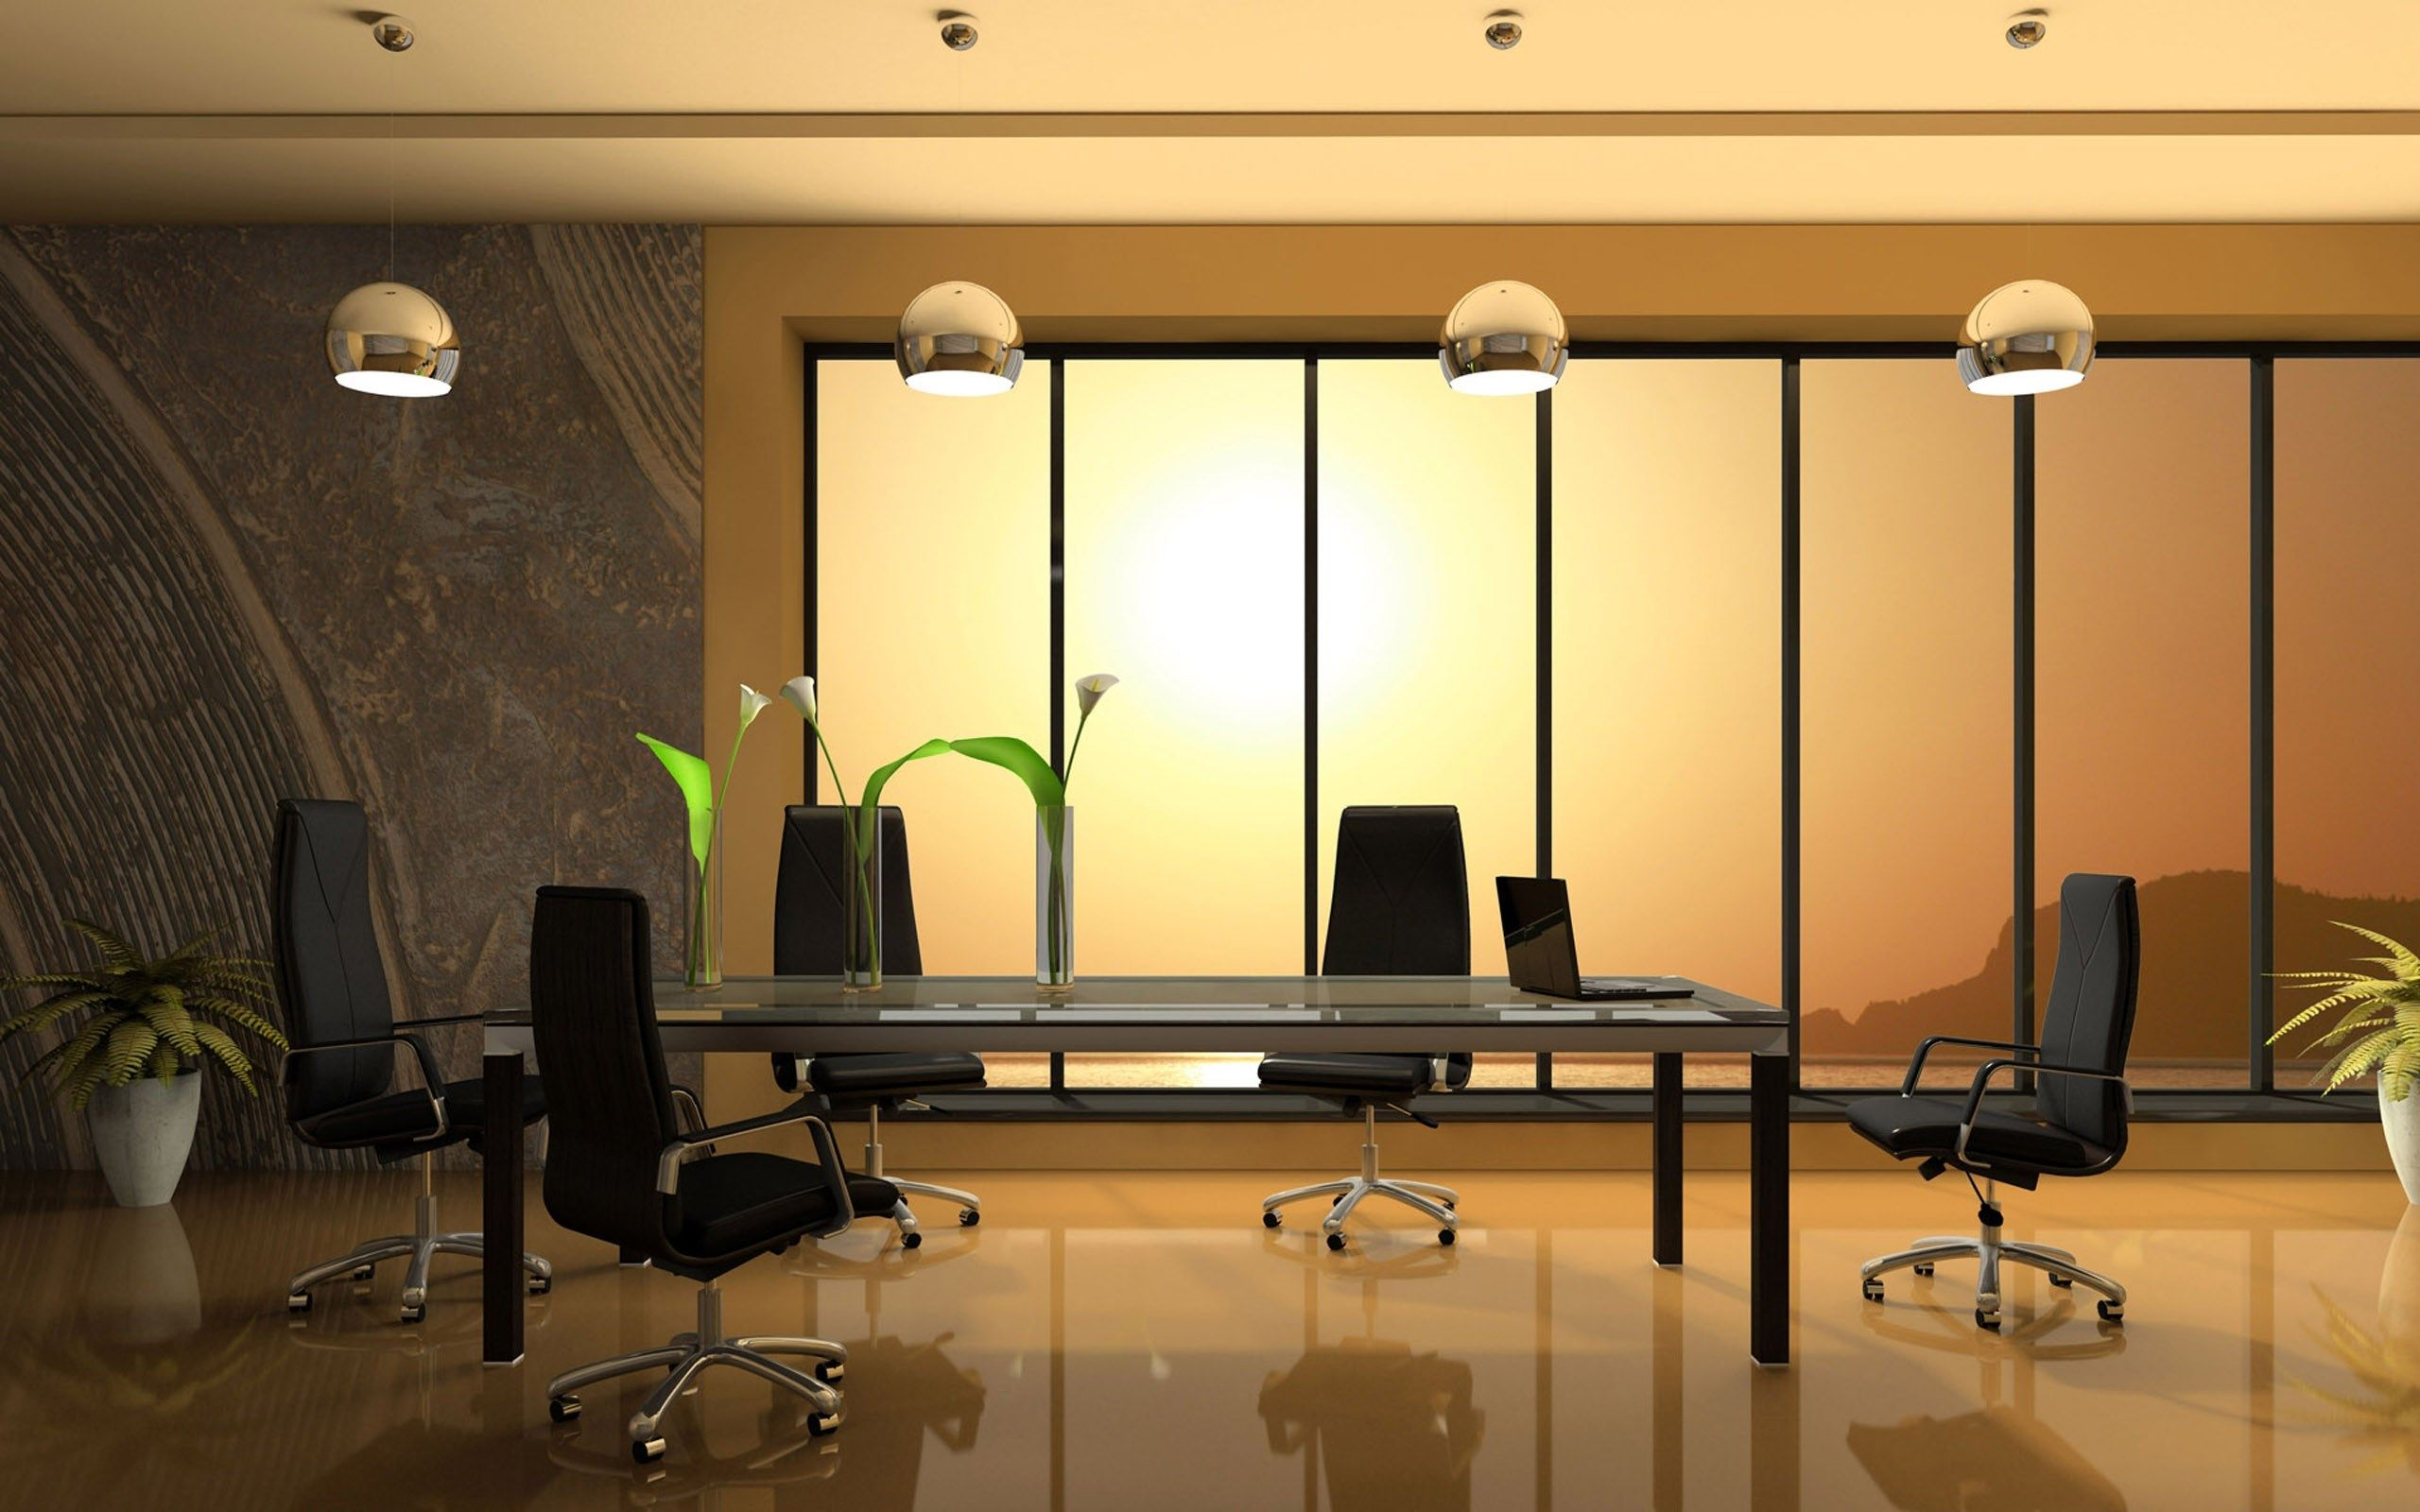 pictures cubicle wallpaper hd | sharovarka | Pinterest | Cubicle ...